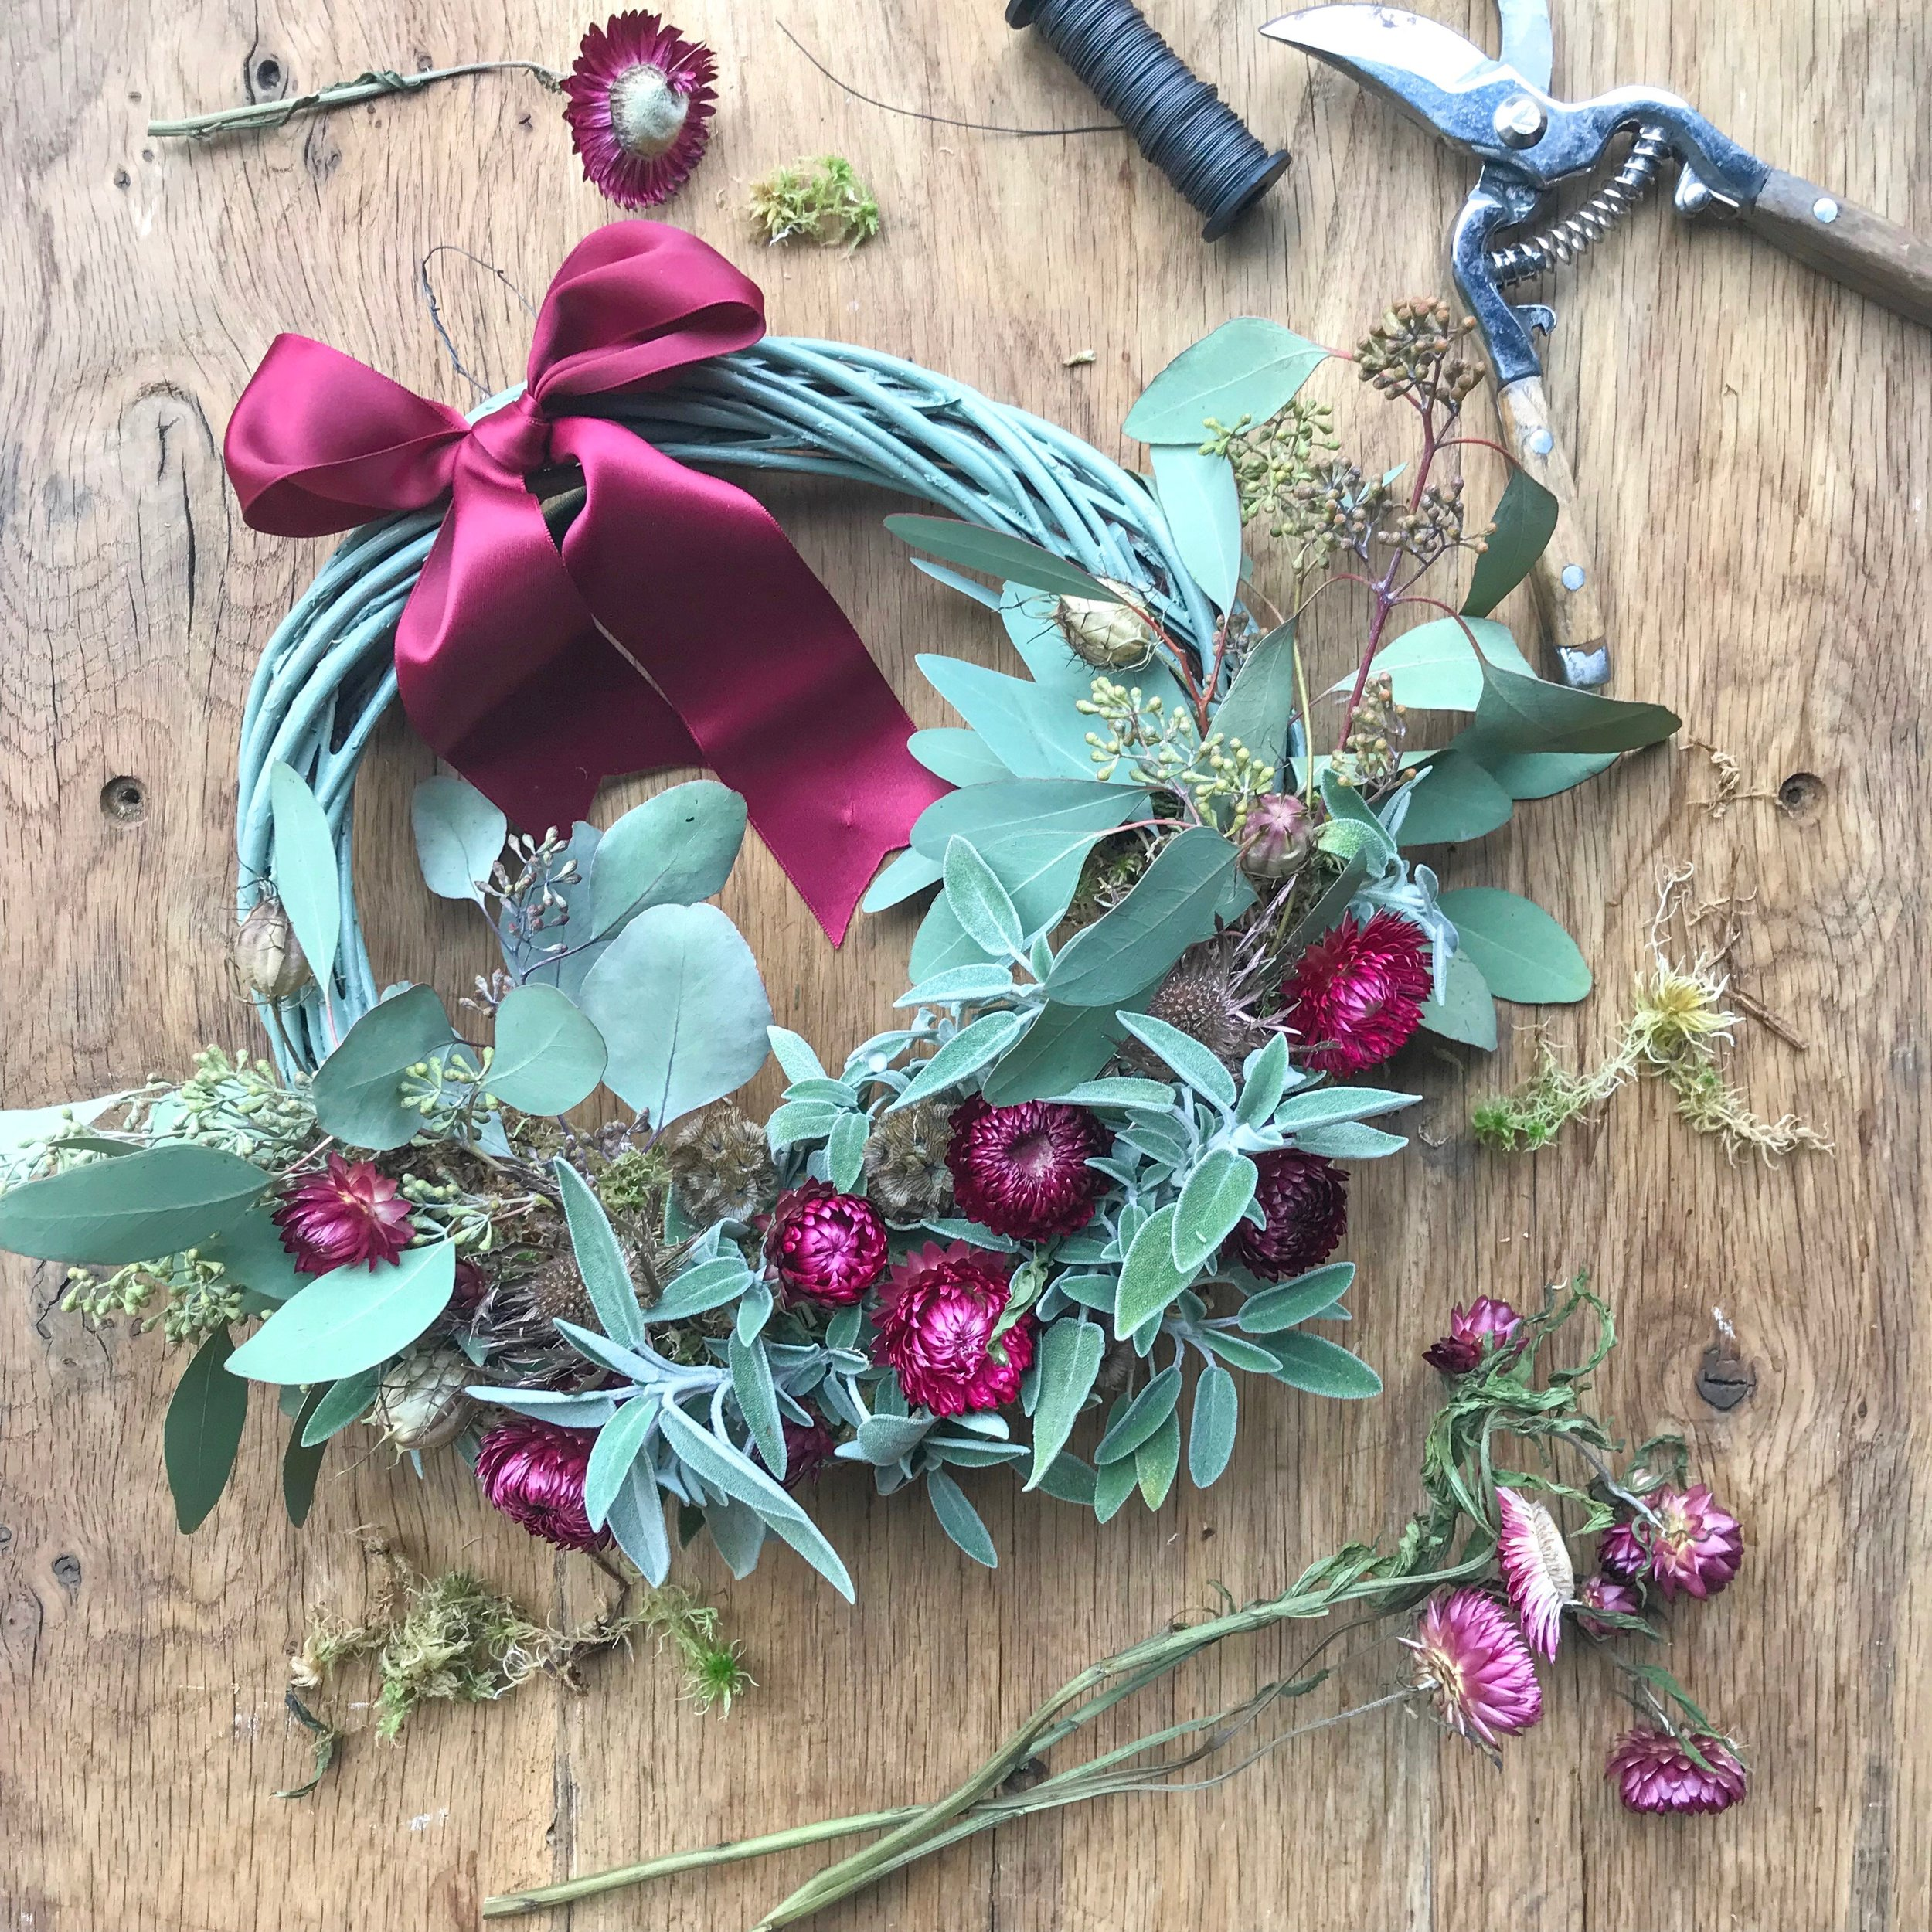 dried flower door wreath.jpg